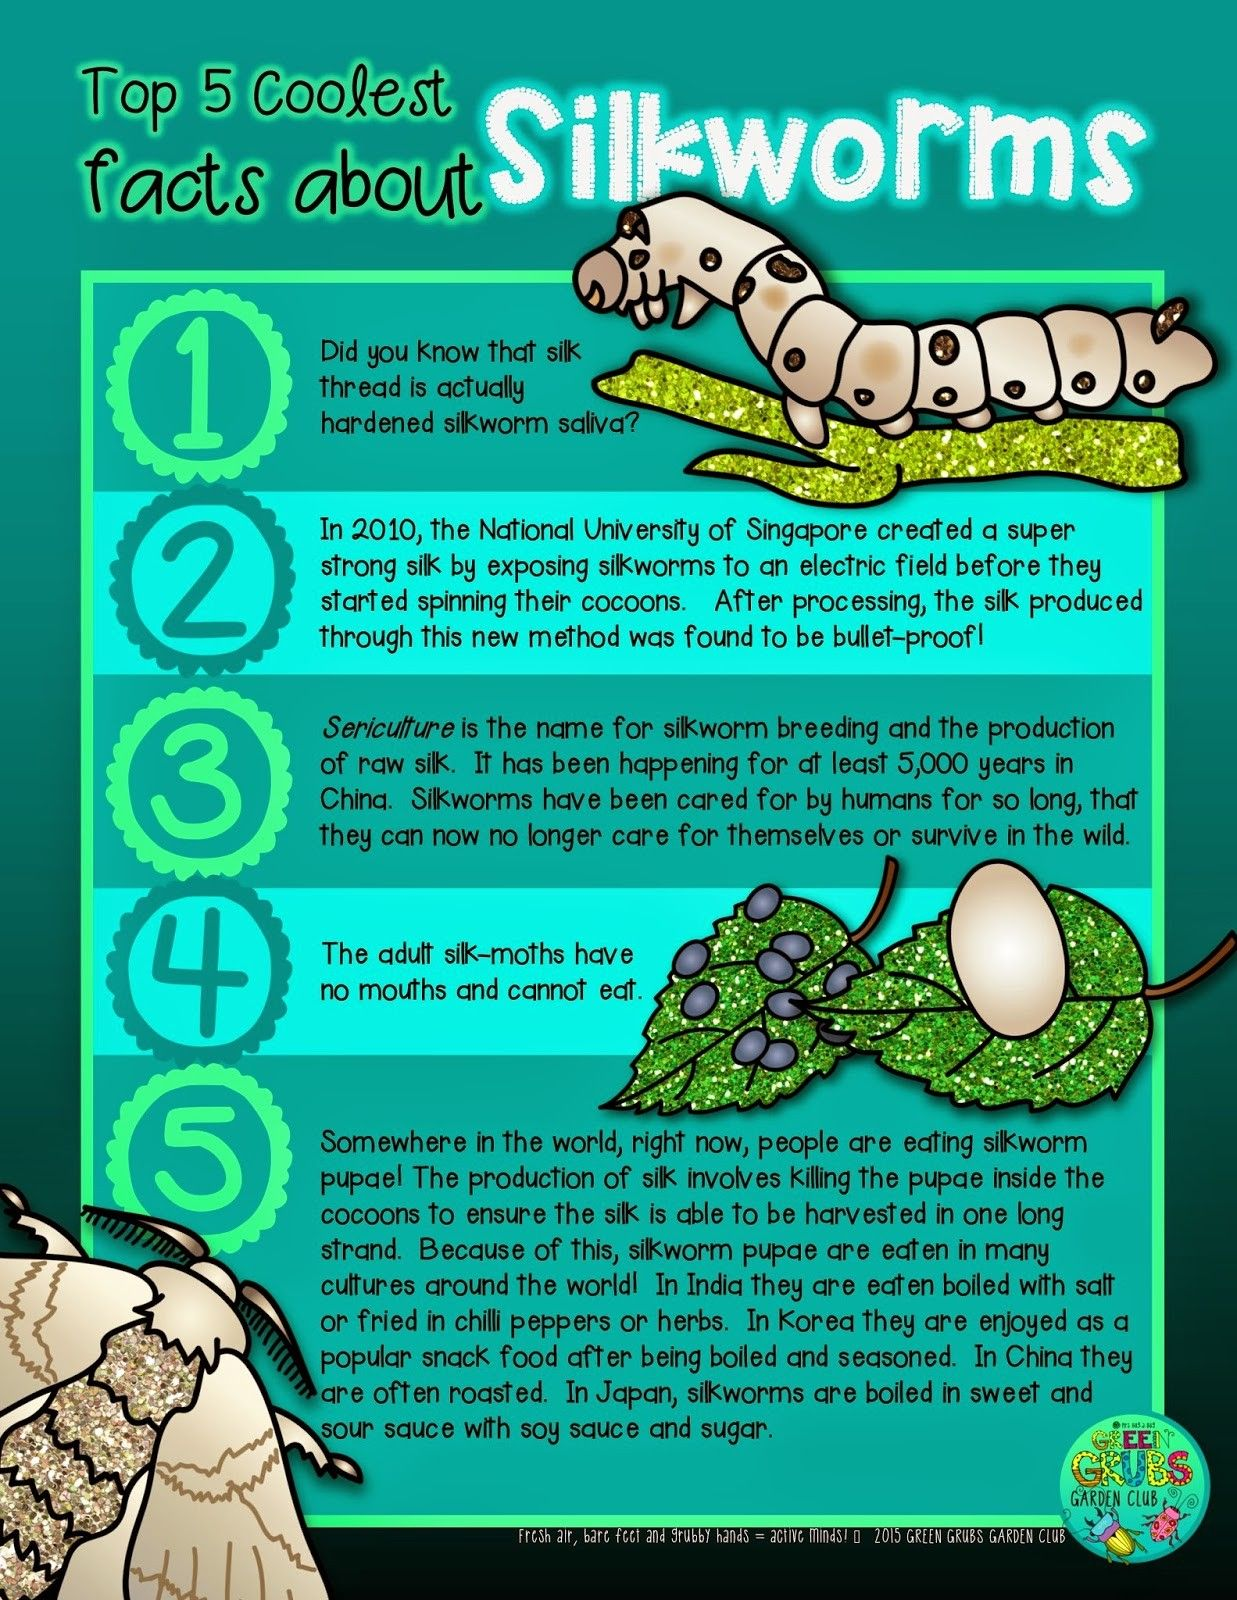 Free Printable Top 5 Coolest Facts About Silkworms Amp Silk Moths Green Grubs Garden Club Blog